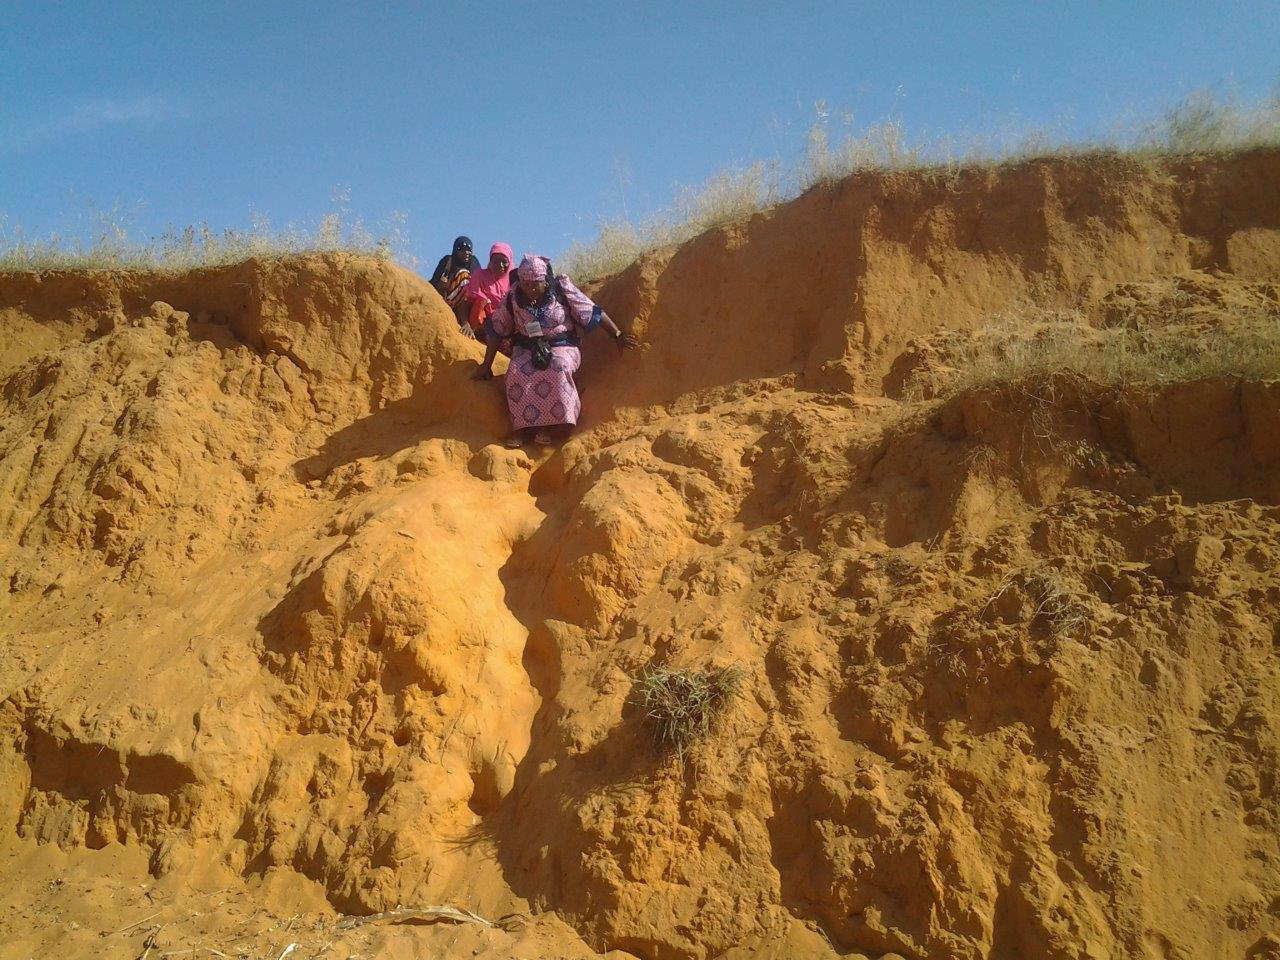 A Nigeria FETP resident and two data collectors hike down extremely difficult terrain to reach underserved settlements.